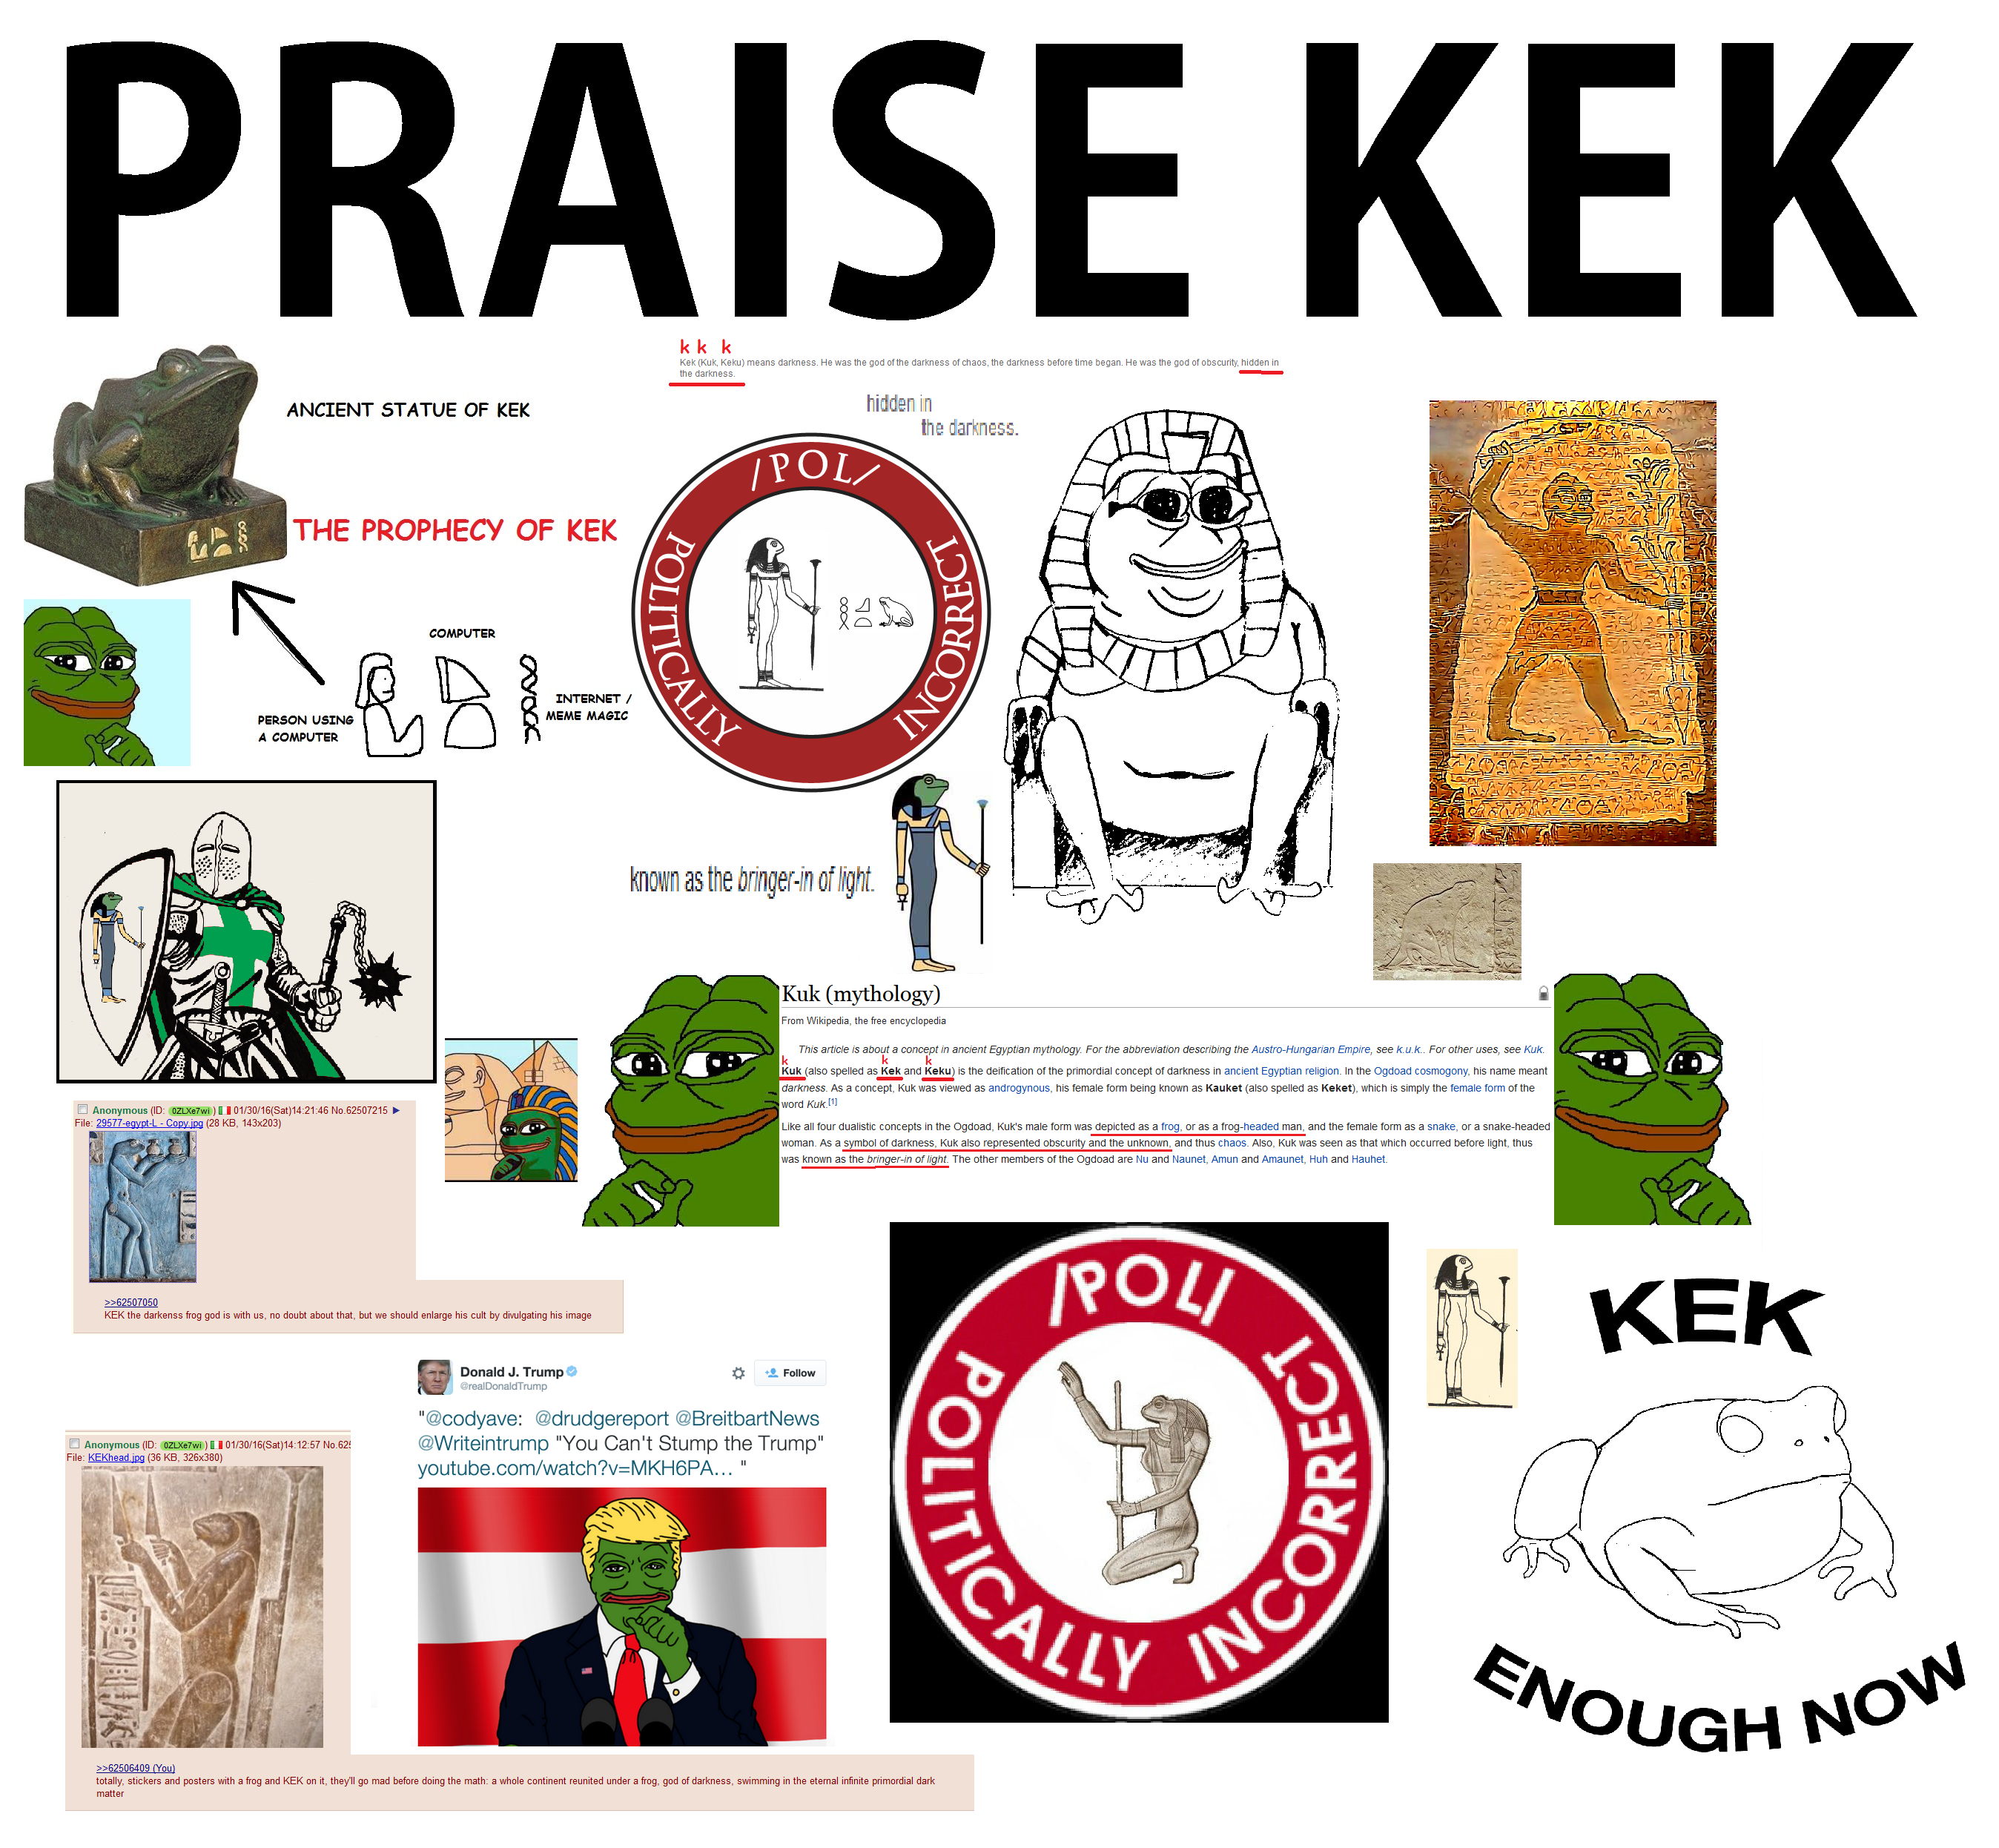 Kek: what does this word mean